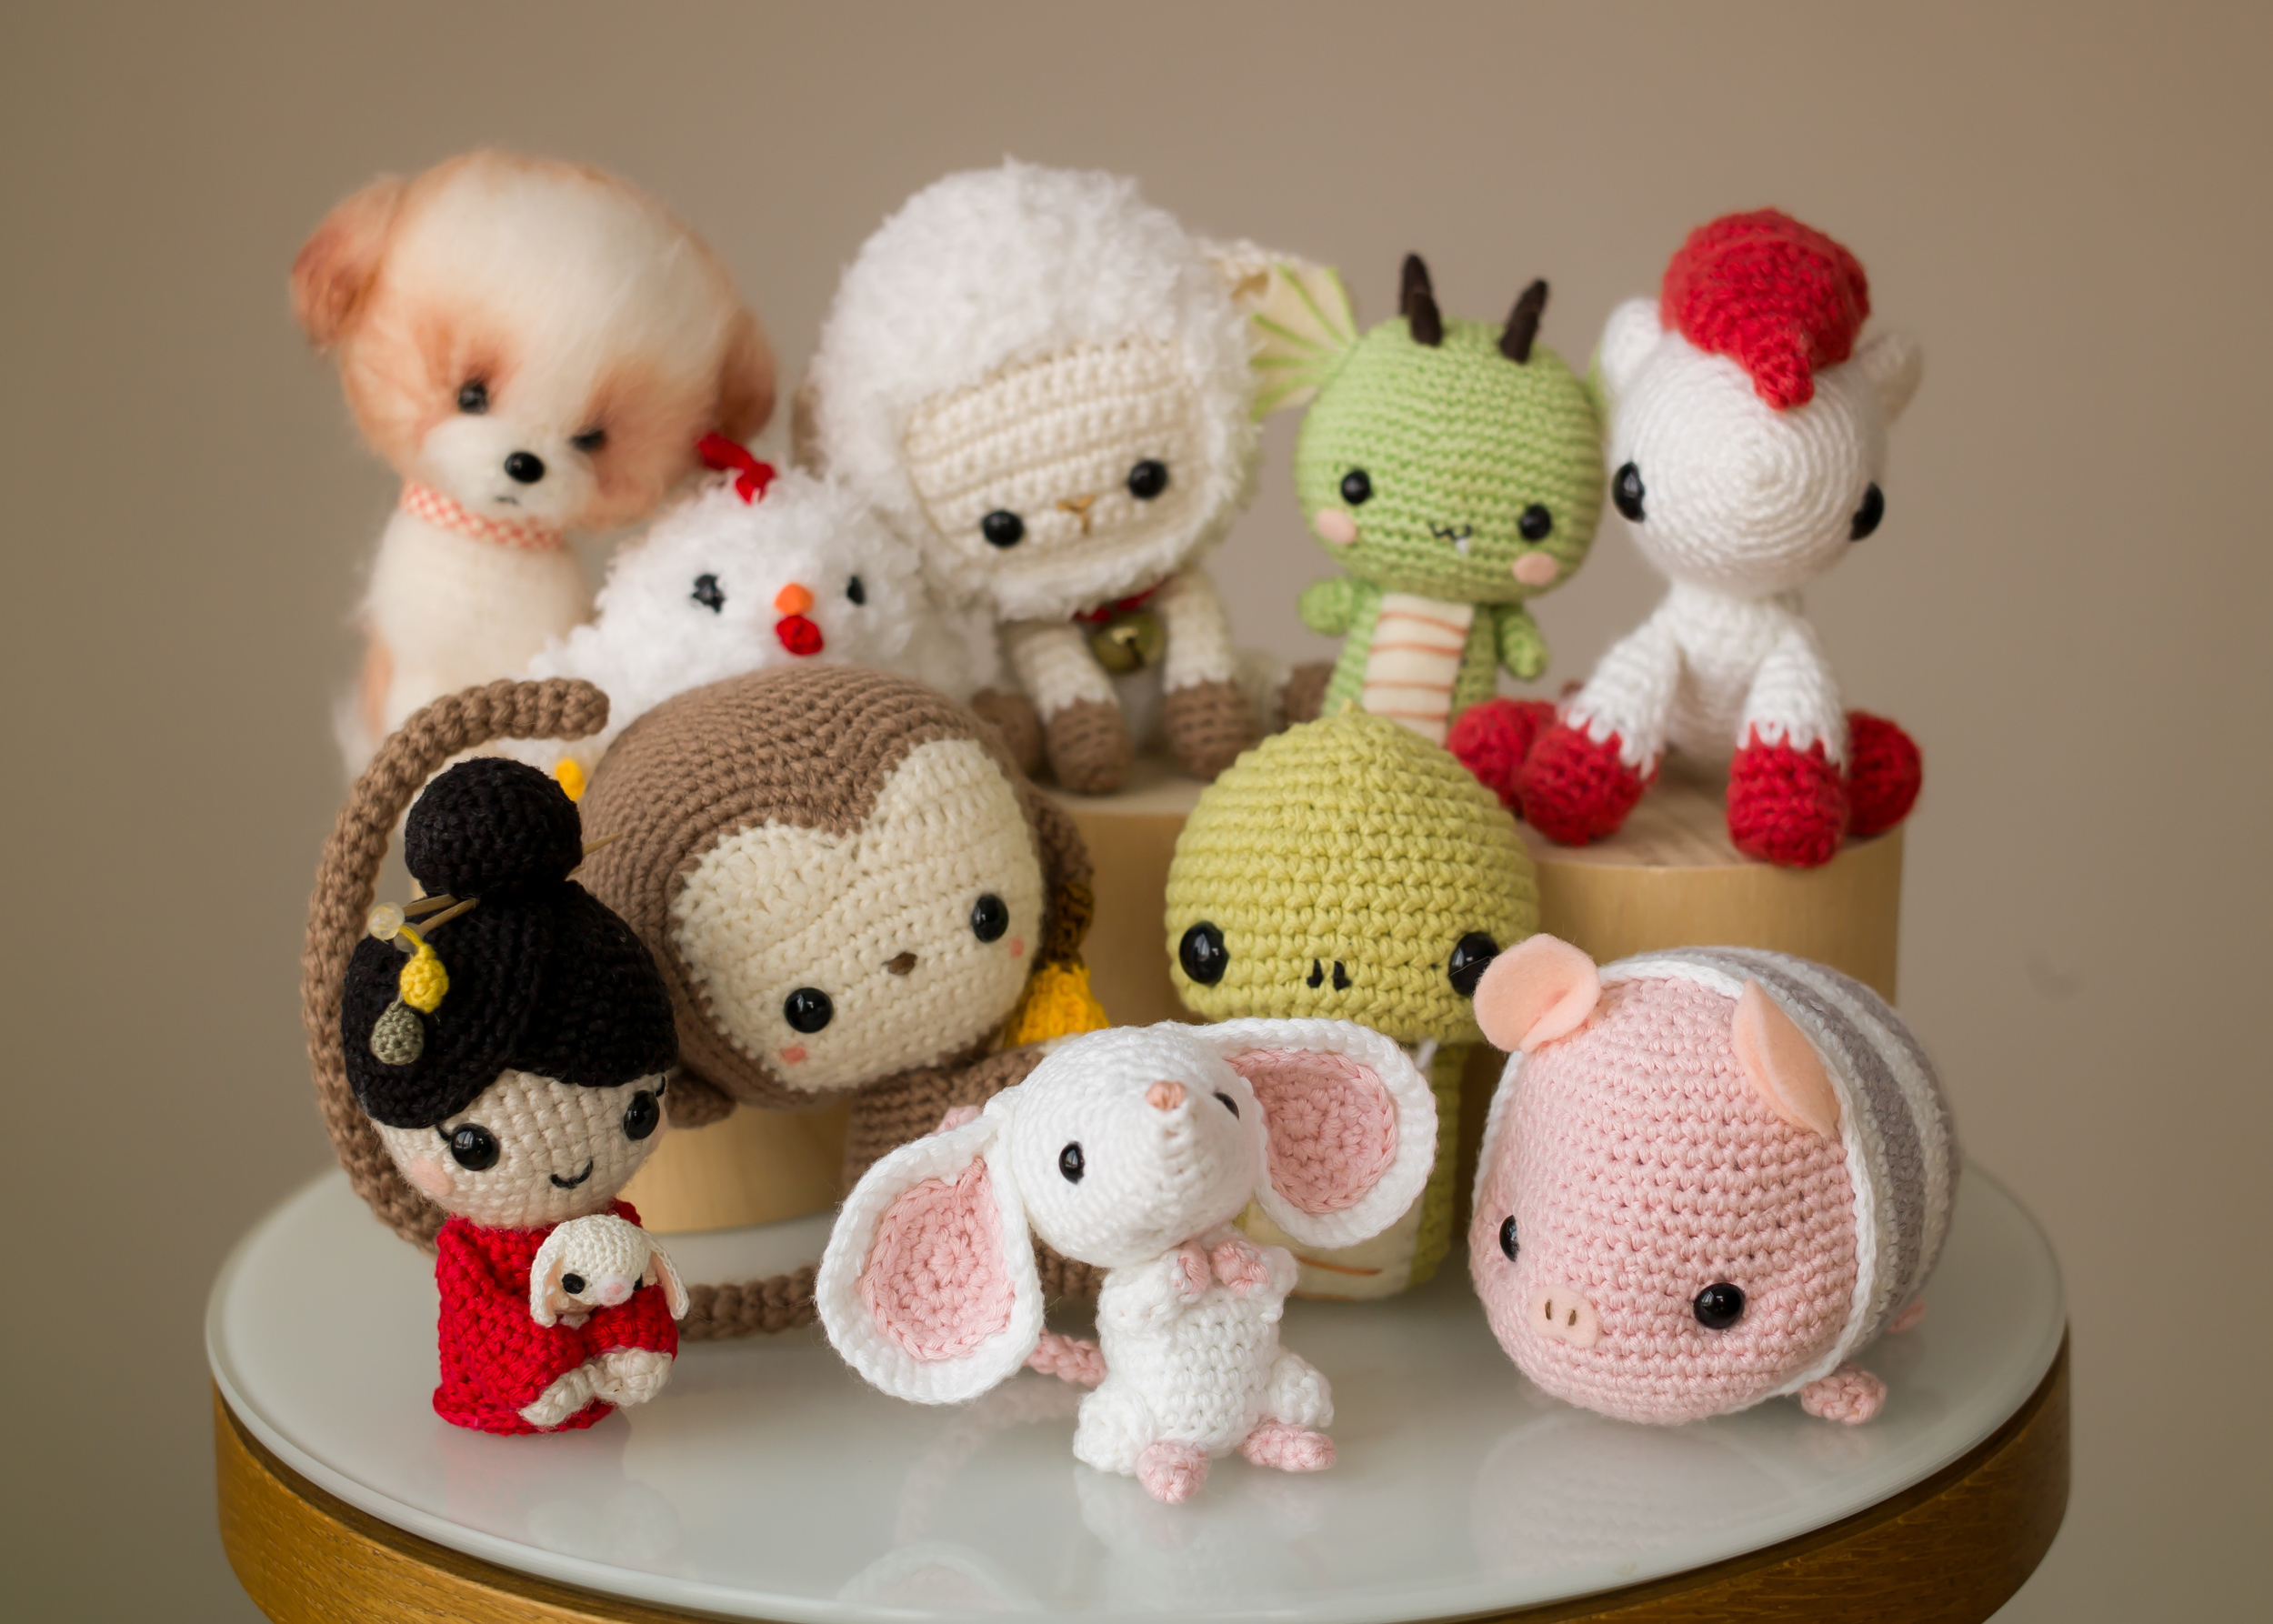 I Design And Crochet Stuffed Animals To Celebrate Chinese New Year!